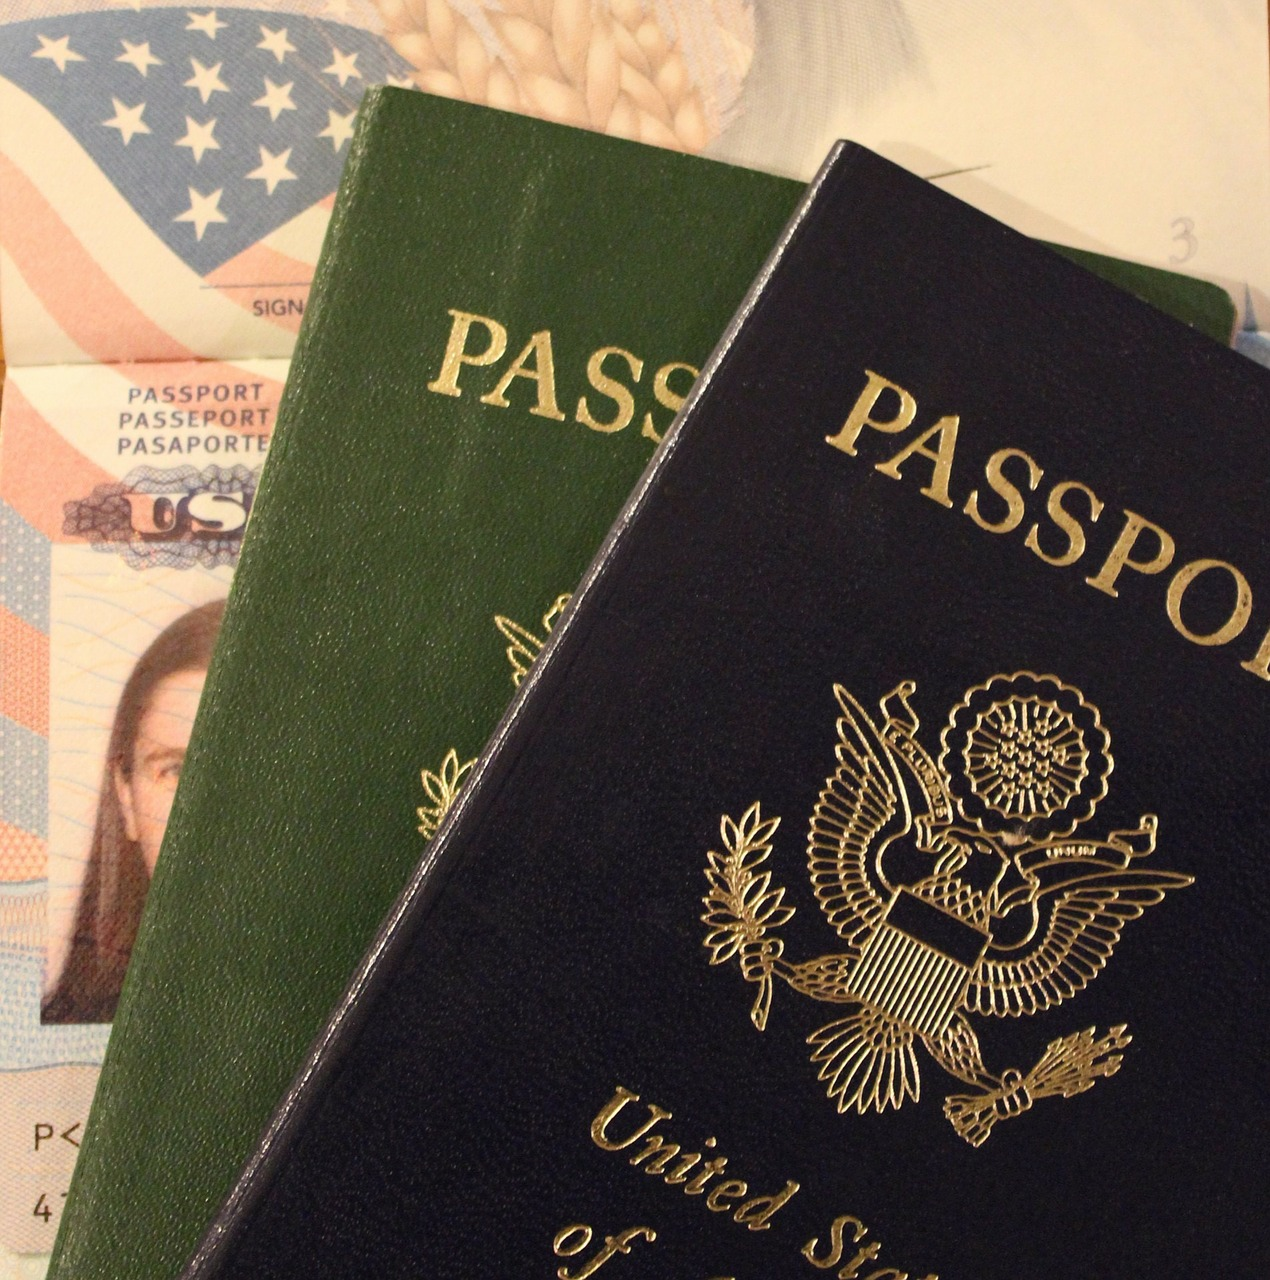 Passport - 3 Things You Must Do Before Travelling Overseas - The Trusted Traveller